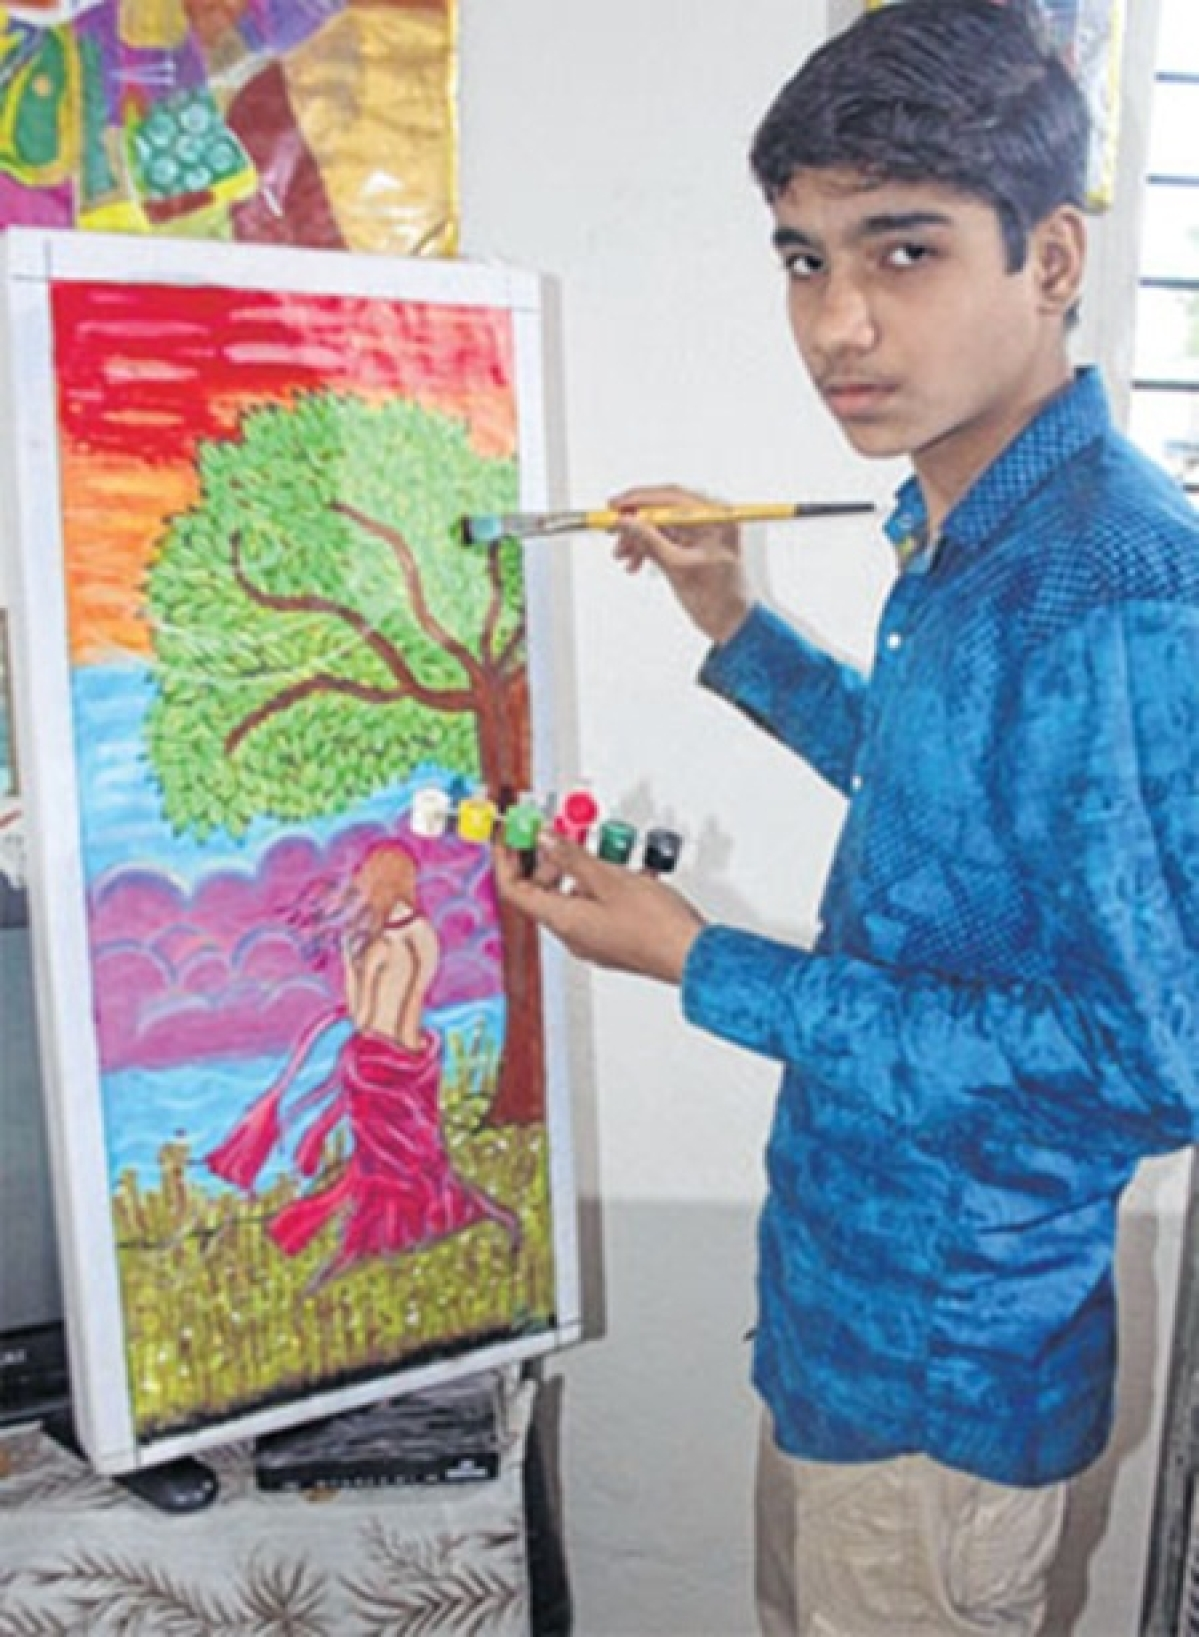 Indore: A teenager who paints to show life's brighter aspect